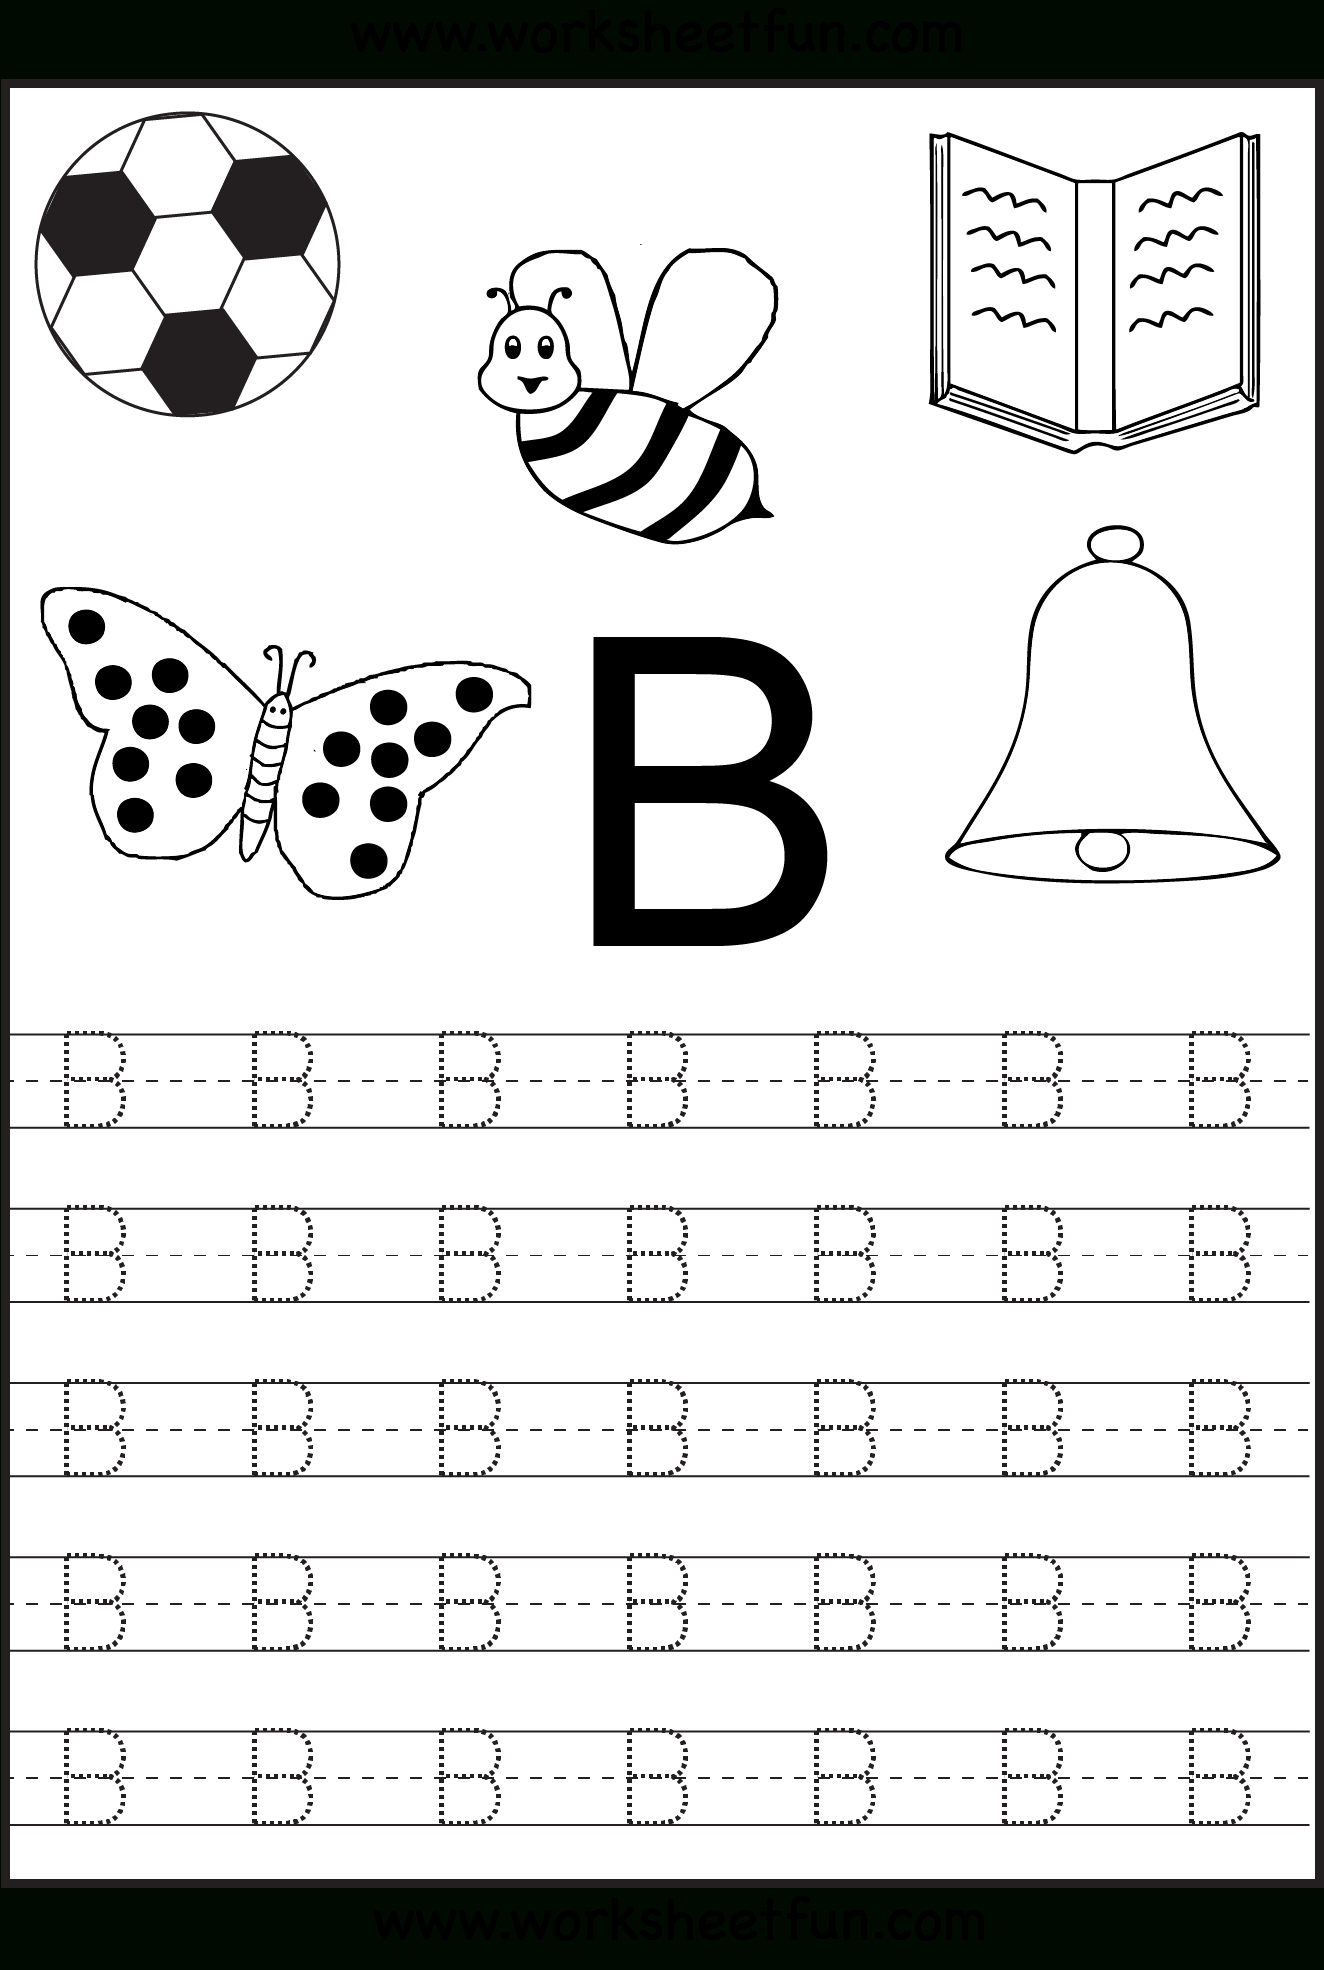 Free Printable Letter Tracing Worksheets For Kindergarten in Letter Tracing Kindergarten